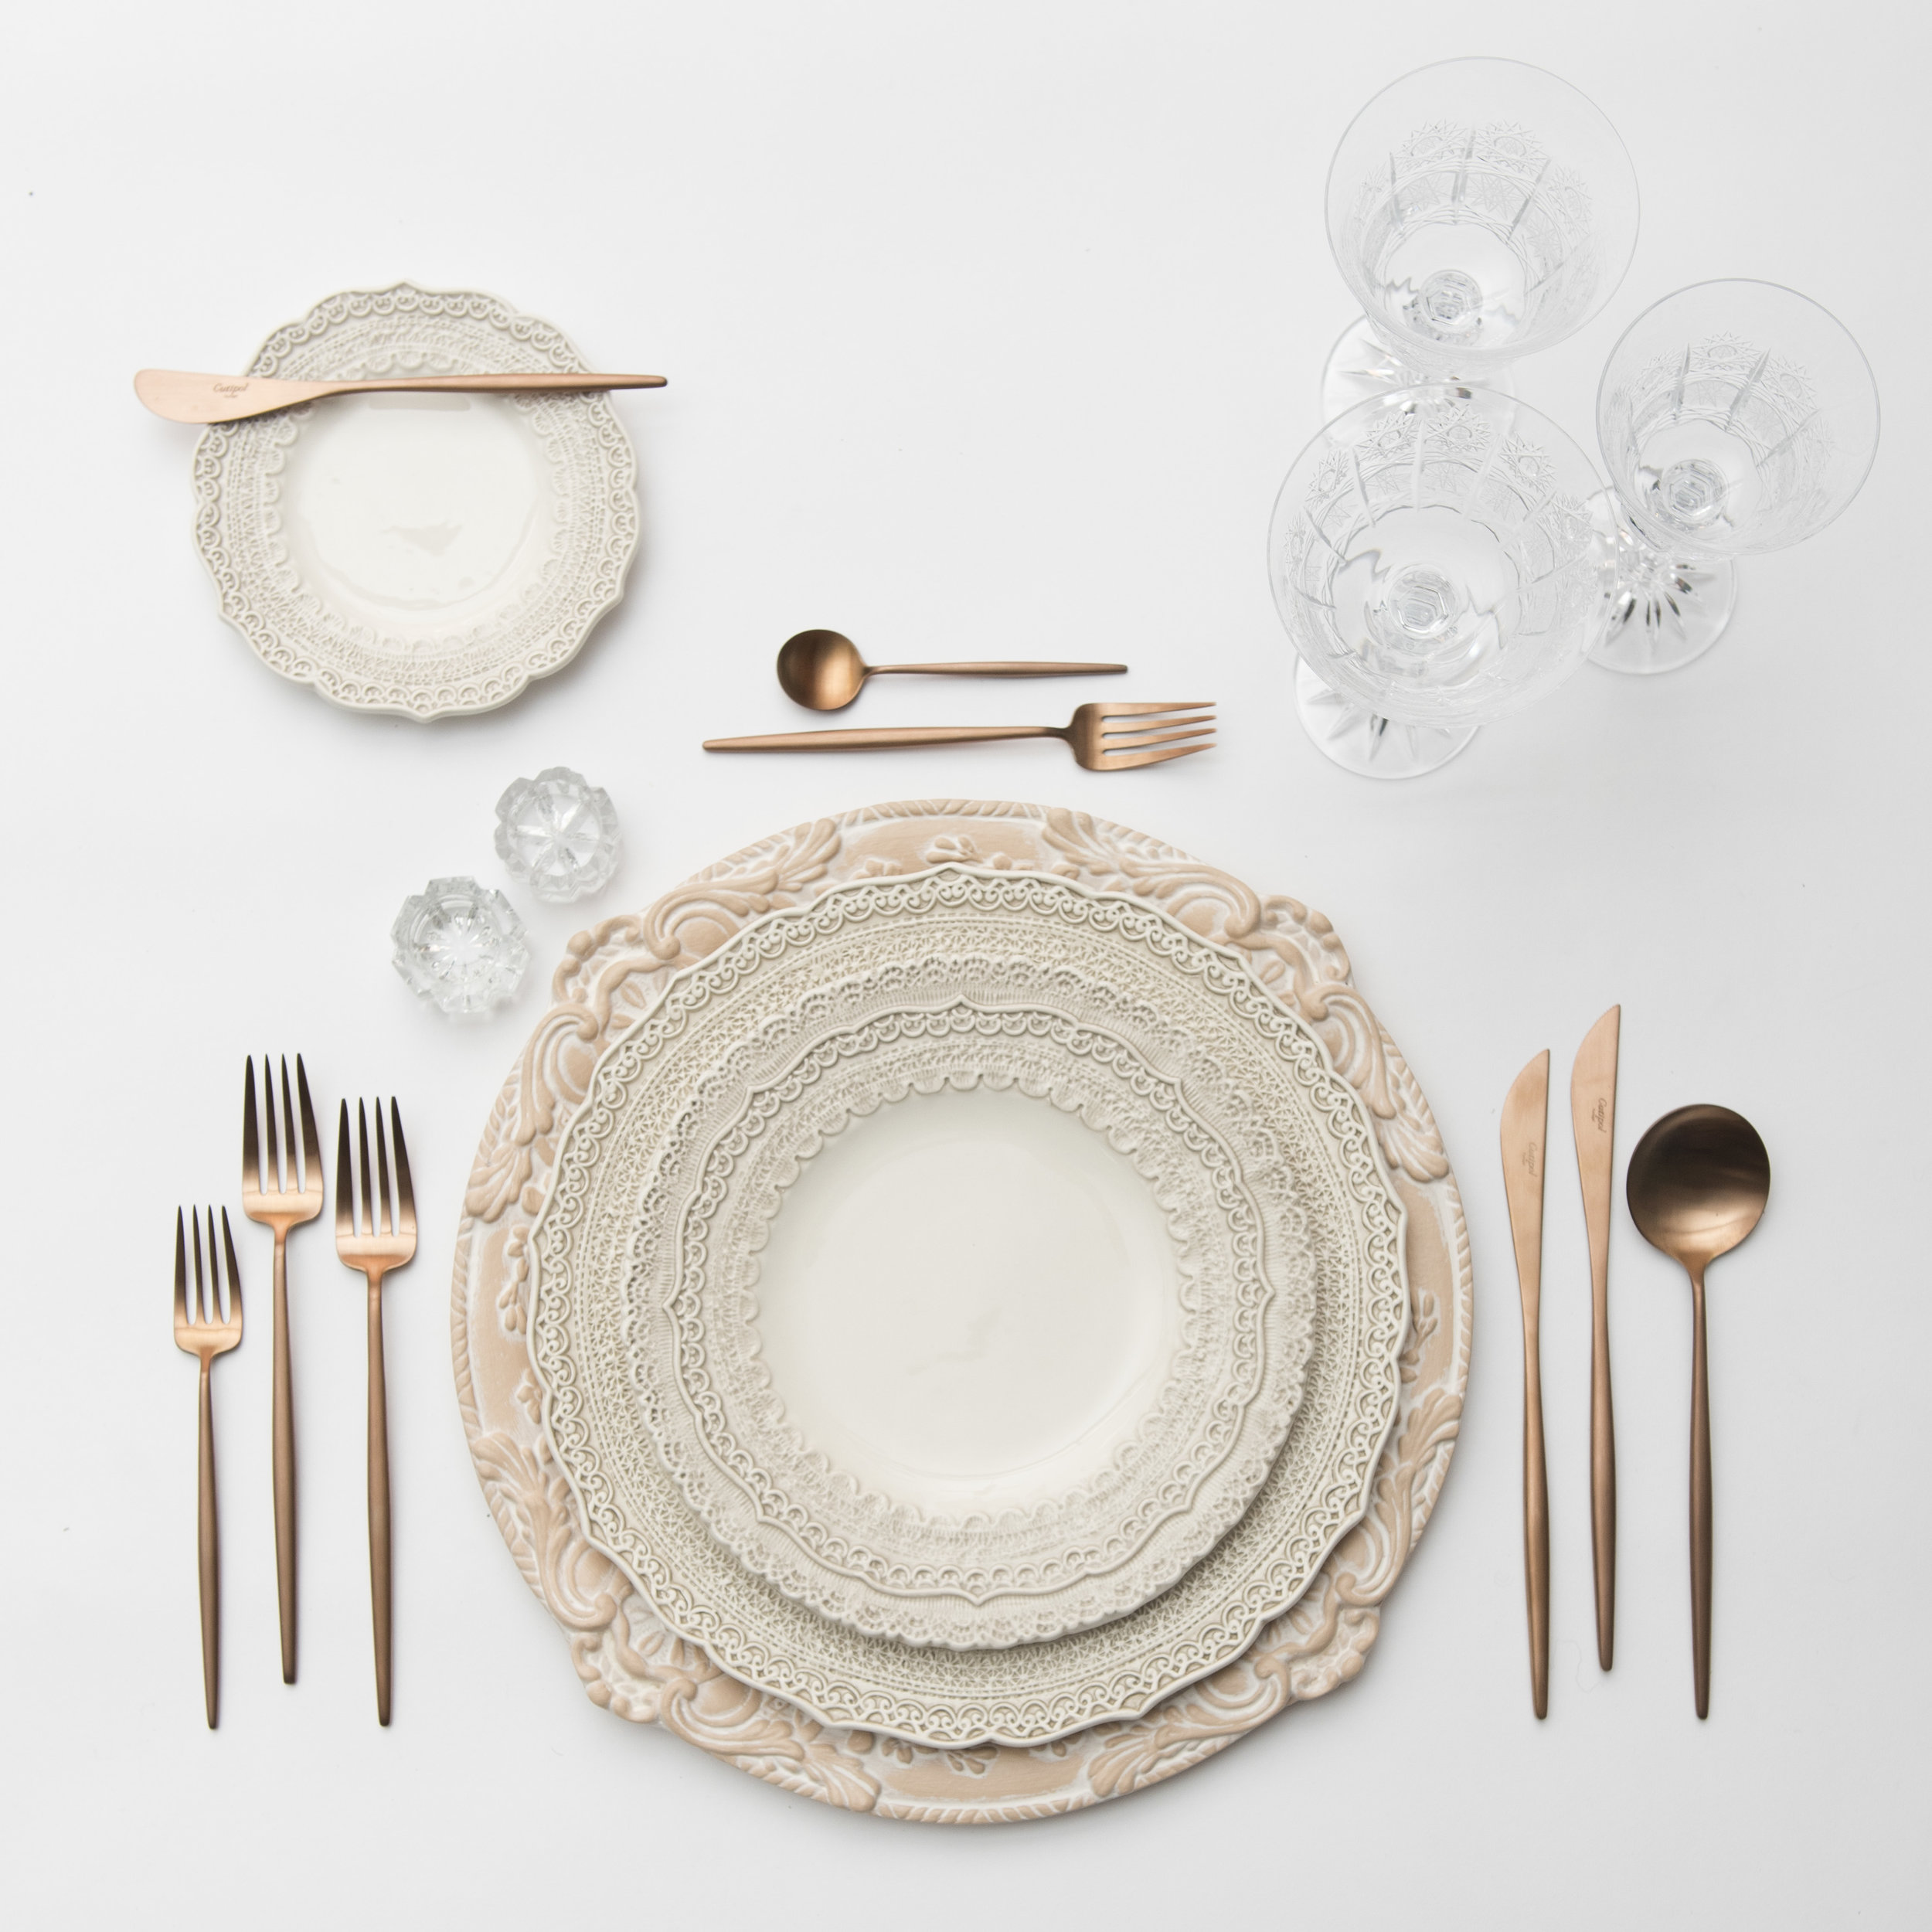 RENT: Verona Chargers in Terracotta + Lace Dinnerware in White + Moon Flatware in Brushed Rose Gold + Czech Crystal Stemware + Antique Crystal Salt Cellars   SHOP: Verona Chargers in Terracotta + Moon Flatware in Brushed Rose Gold